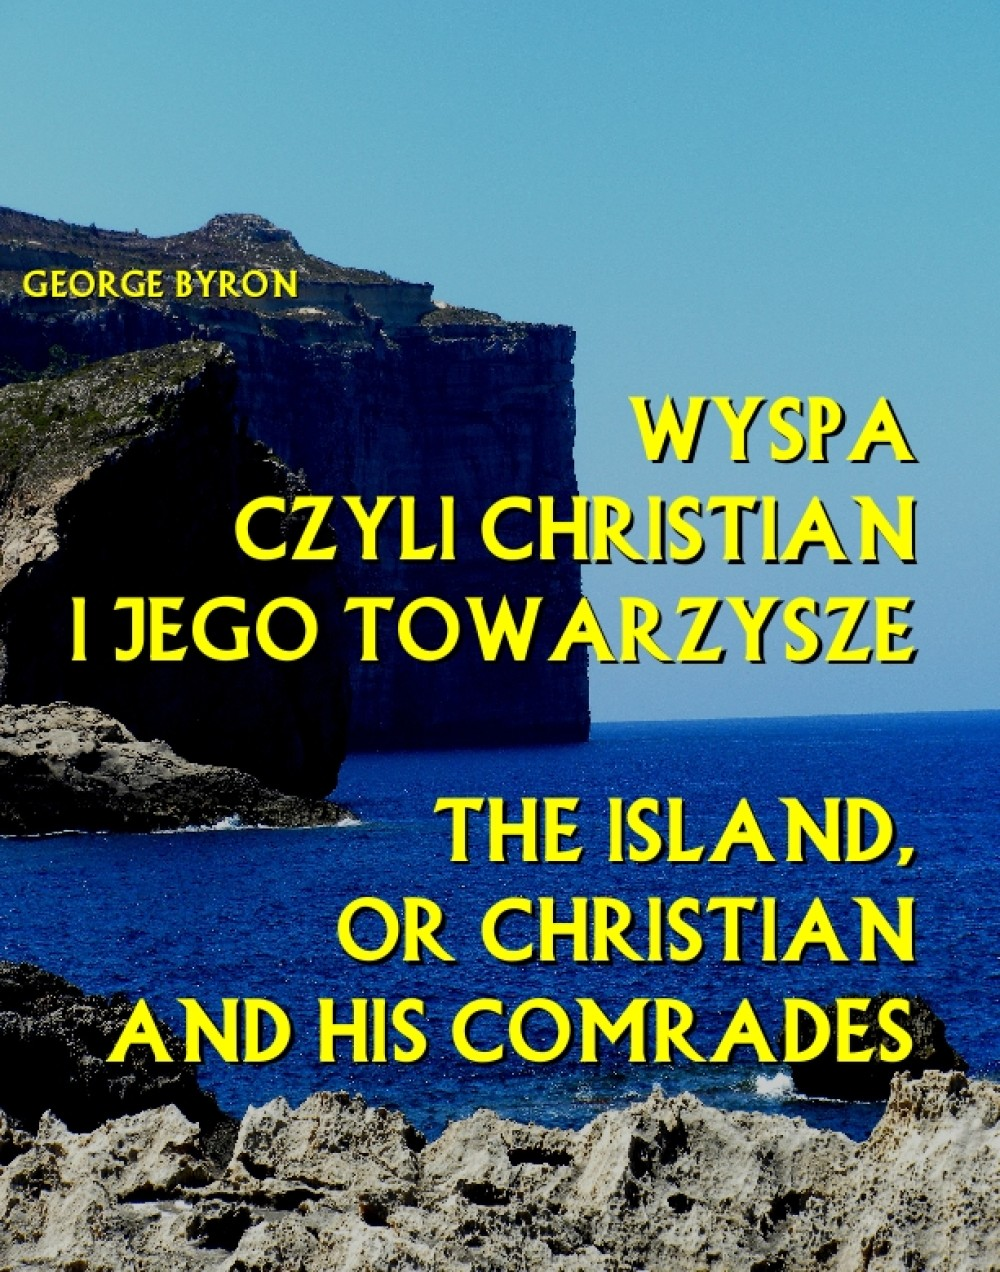 Wyspa czyli Christian i jego towarzysze. The Island, or Christian and his comrades ebook